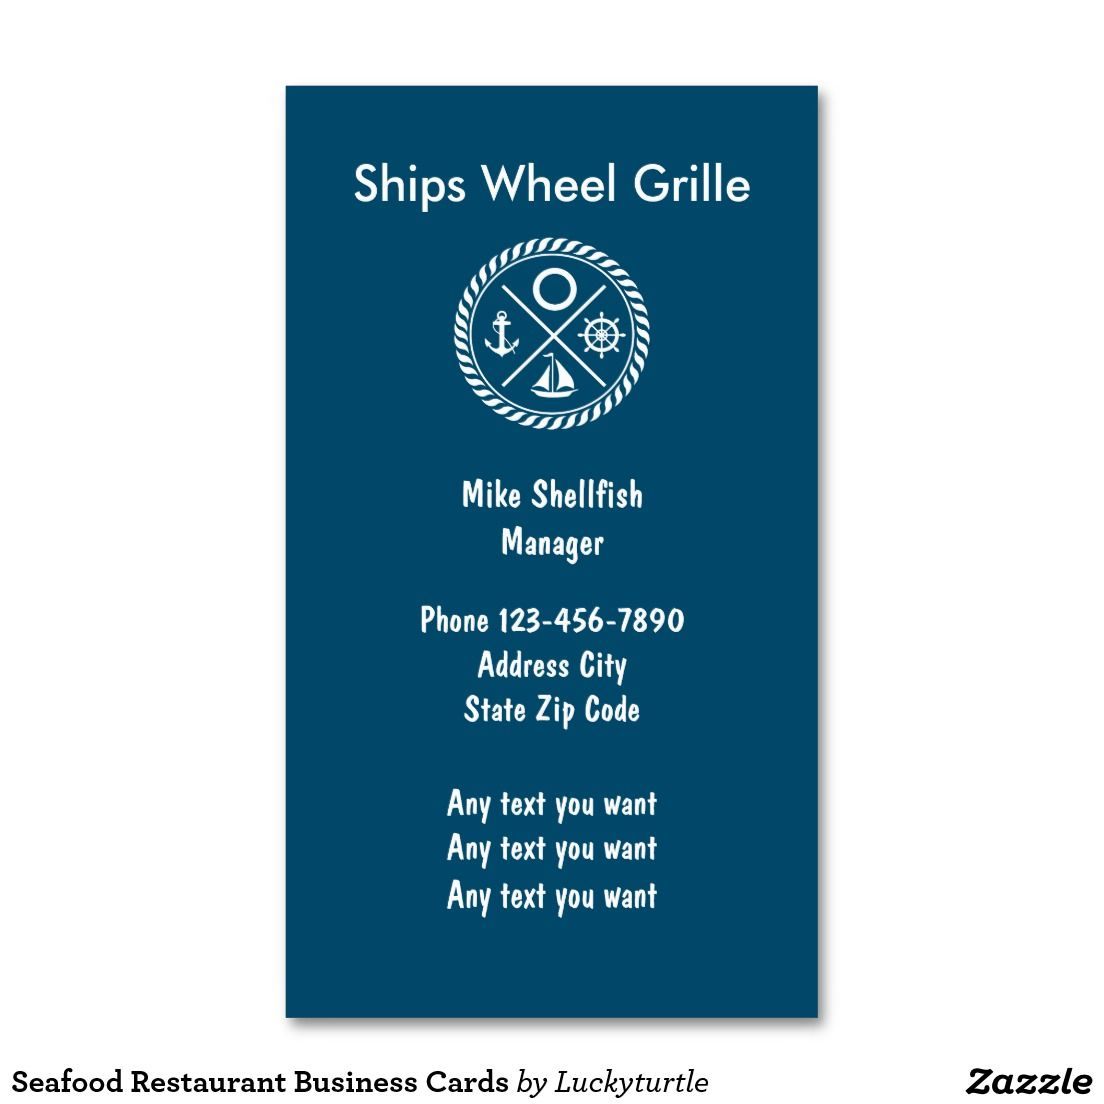 Seafood Restaurant Business Cards | Nautical Business Cards ...